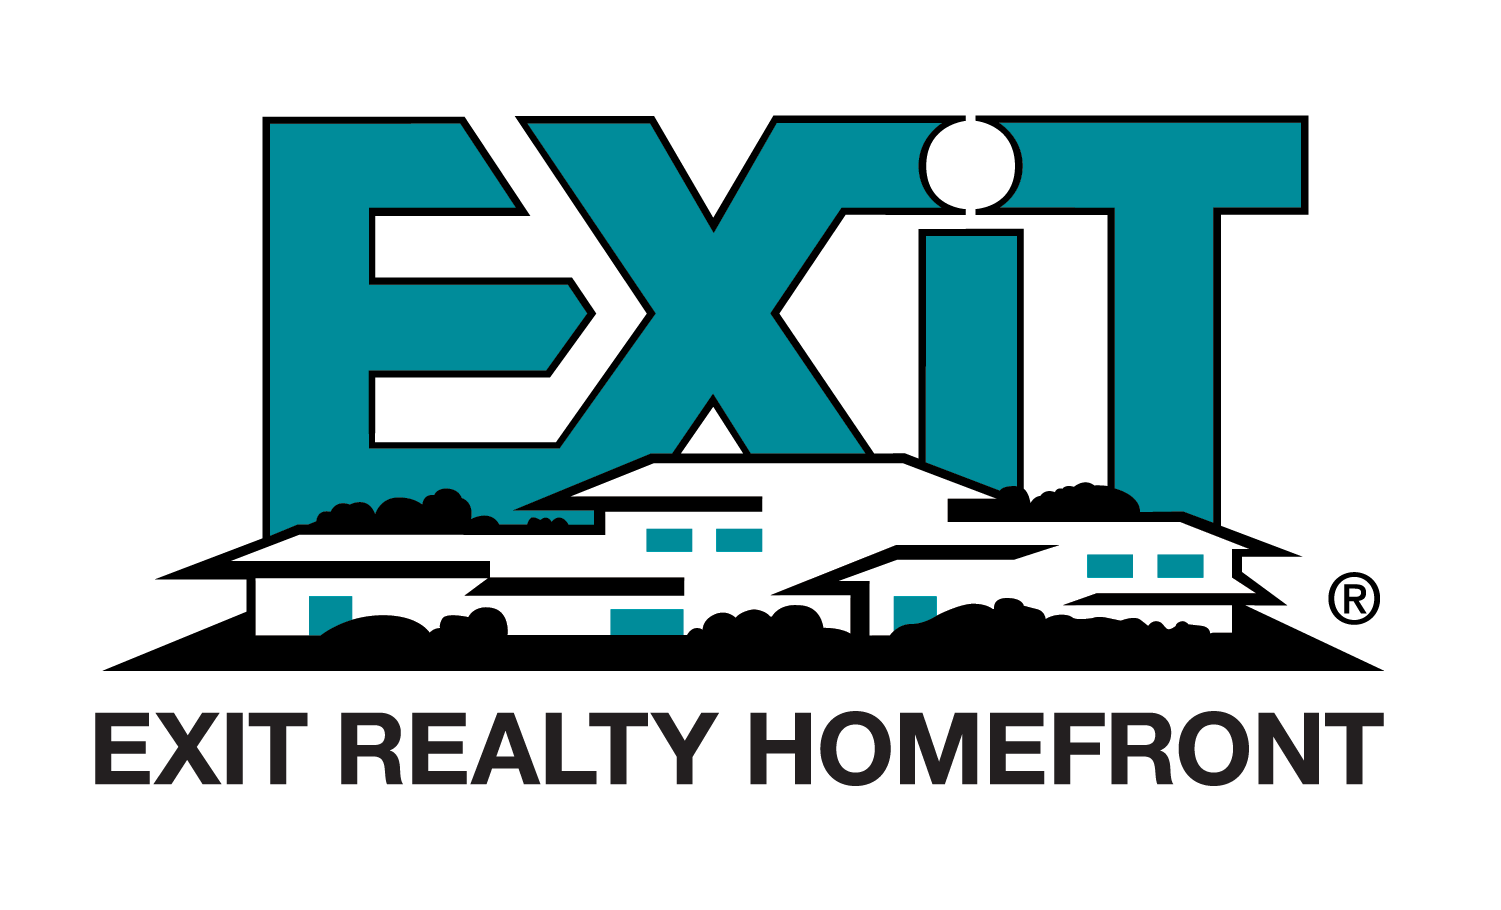 EXIT REALTY HOMEFRONT